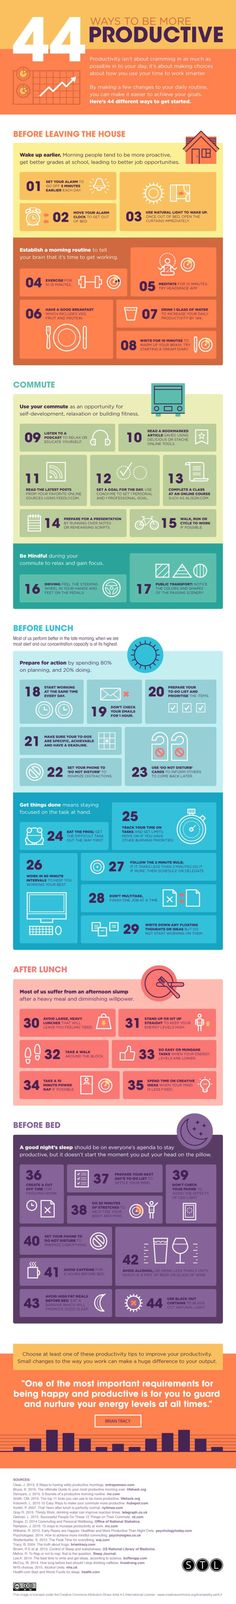 Read 44 Ways To Be More Productive - Do you fancy an infographic? There are a lot of them online, but if you want your own please visit http://www.linfografico.com/prezzi/ Online girano molte infografiche, se ne vuoi realizzare una tutta tua visita http://www.linfografico.com/prezzi/